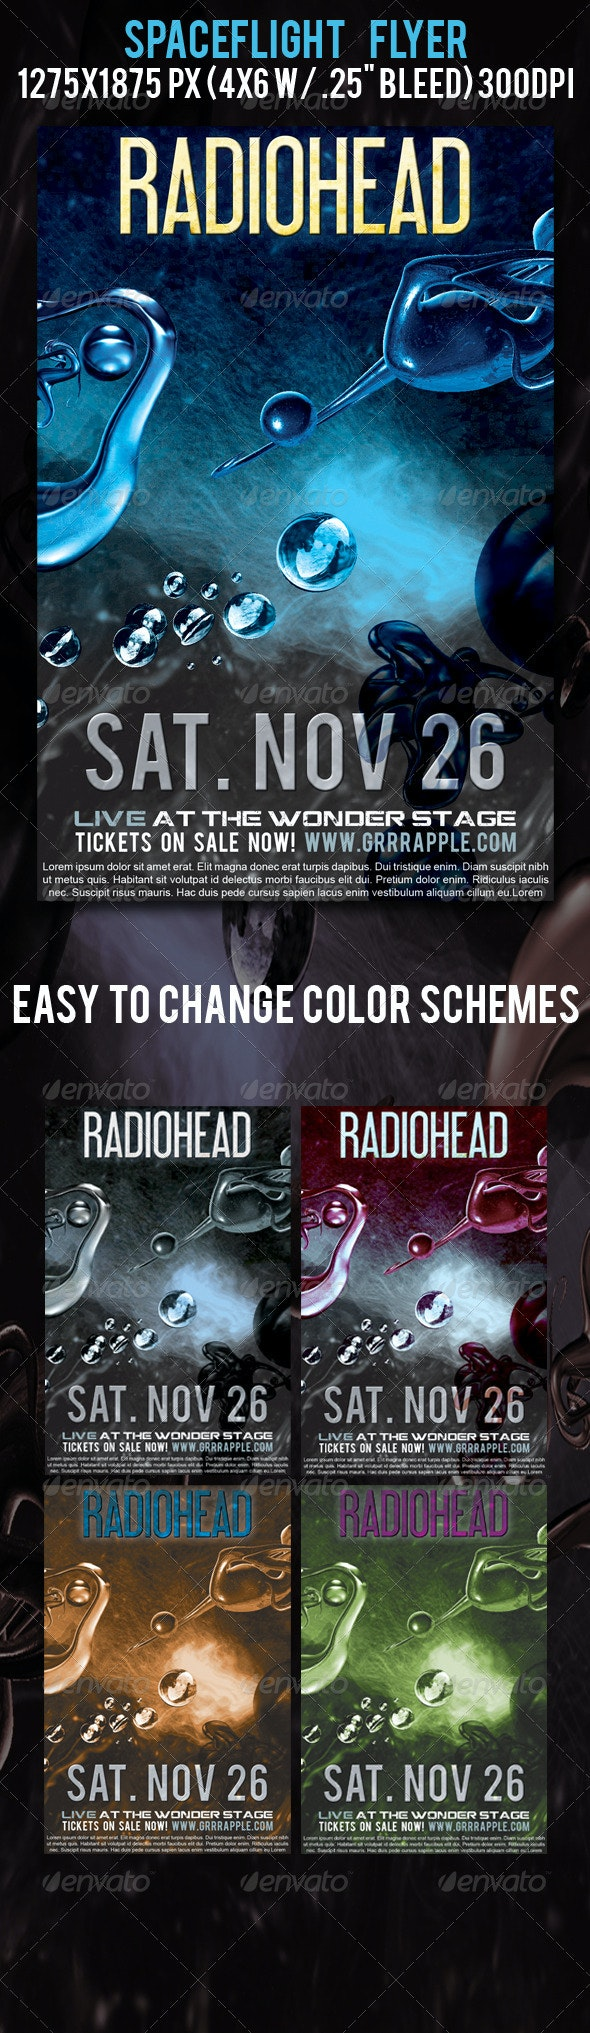 Spaceflight Music Event Flyer - Clubs & Parties Events